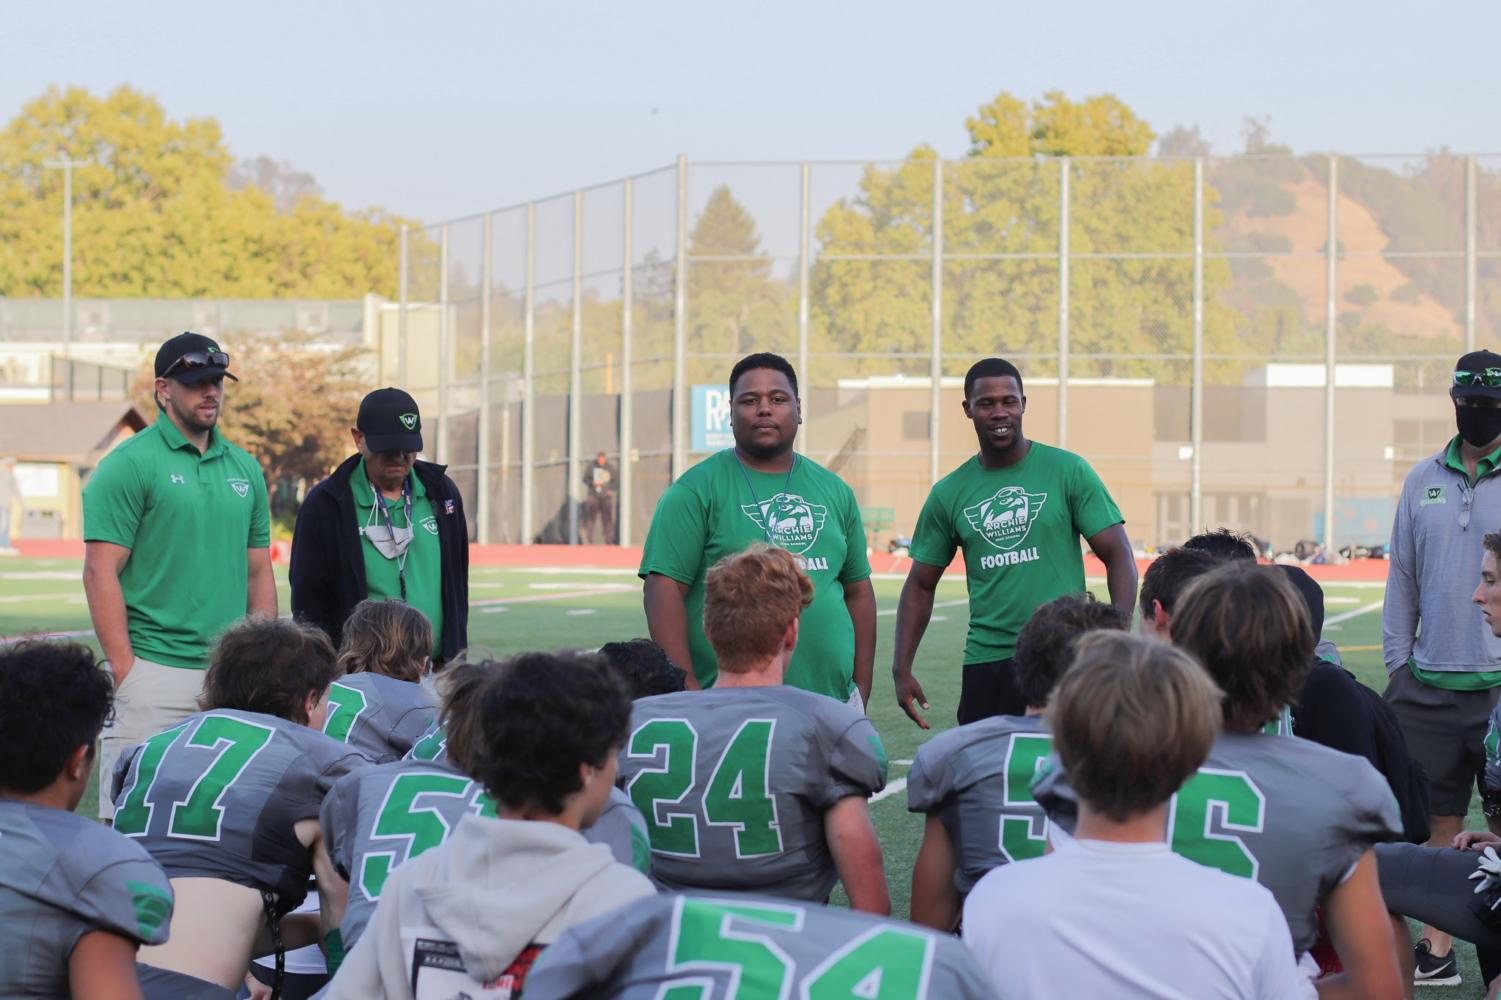 Archie Williams head coach, Anthony Jackson (middle) and his staff (from left to right) Joe Spring, Jack Ruach, Dee Anderson, and Rafael Alonso talking to their players after a victory against Berean Christian